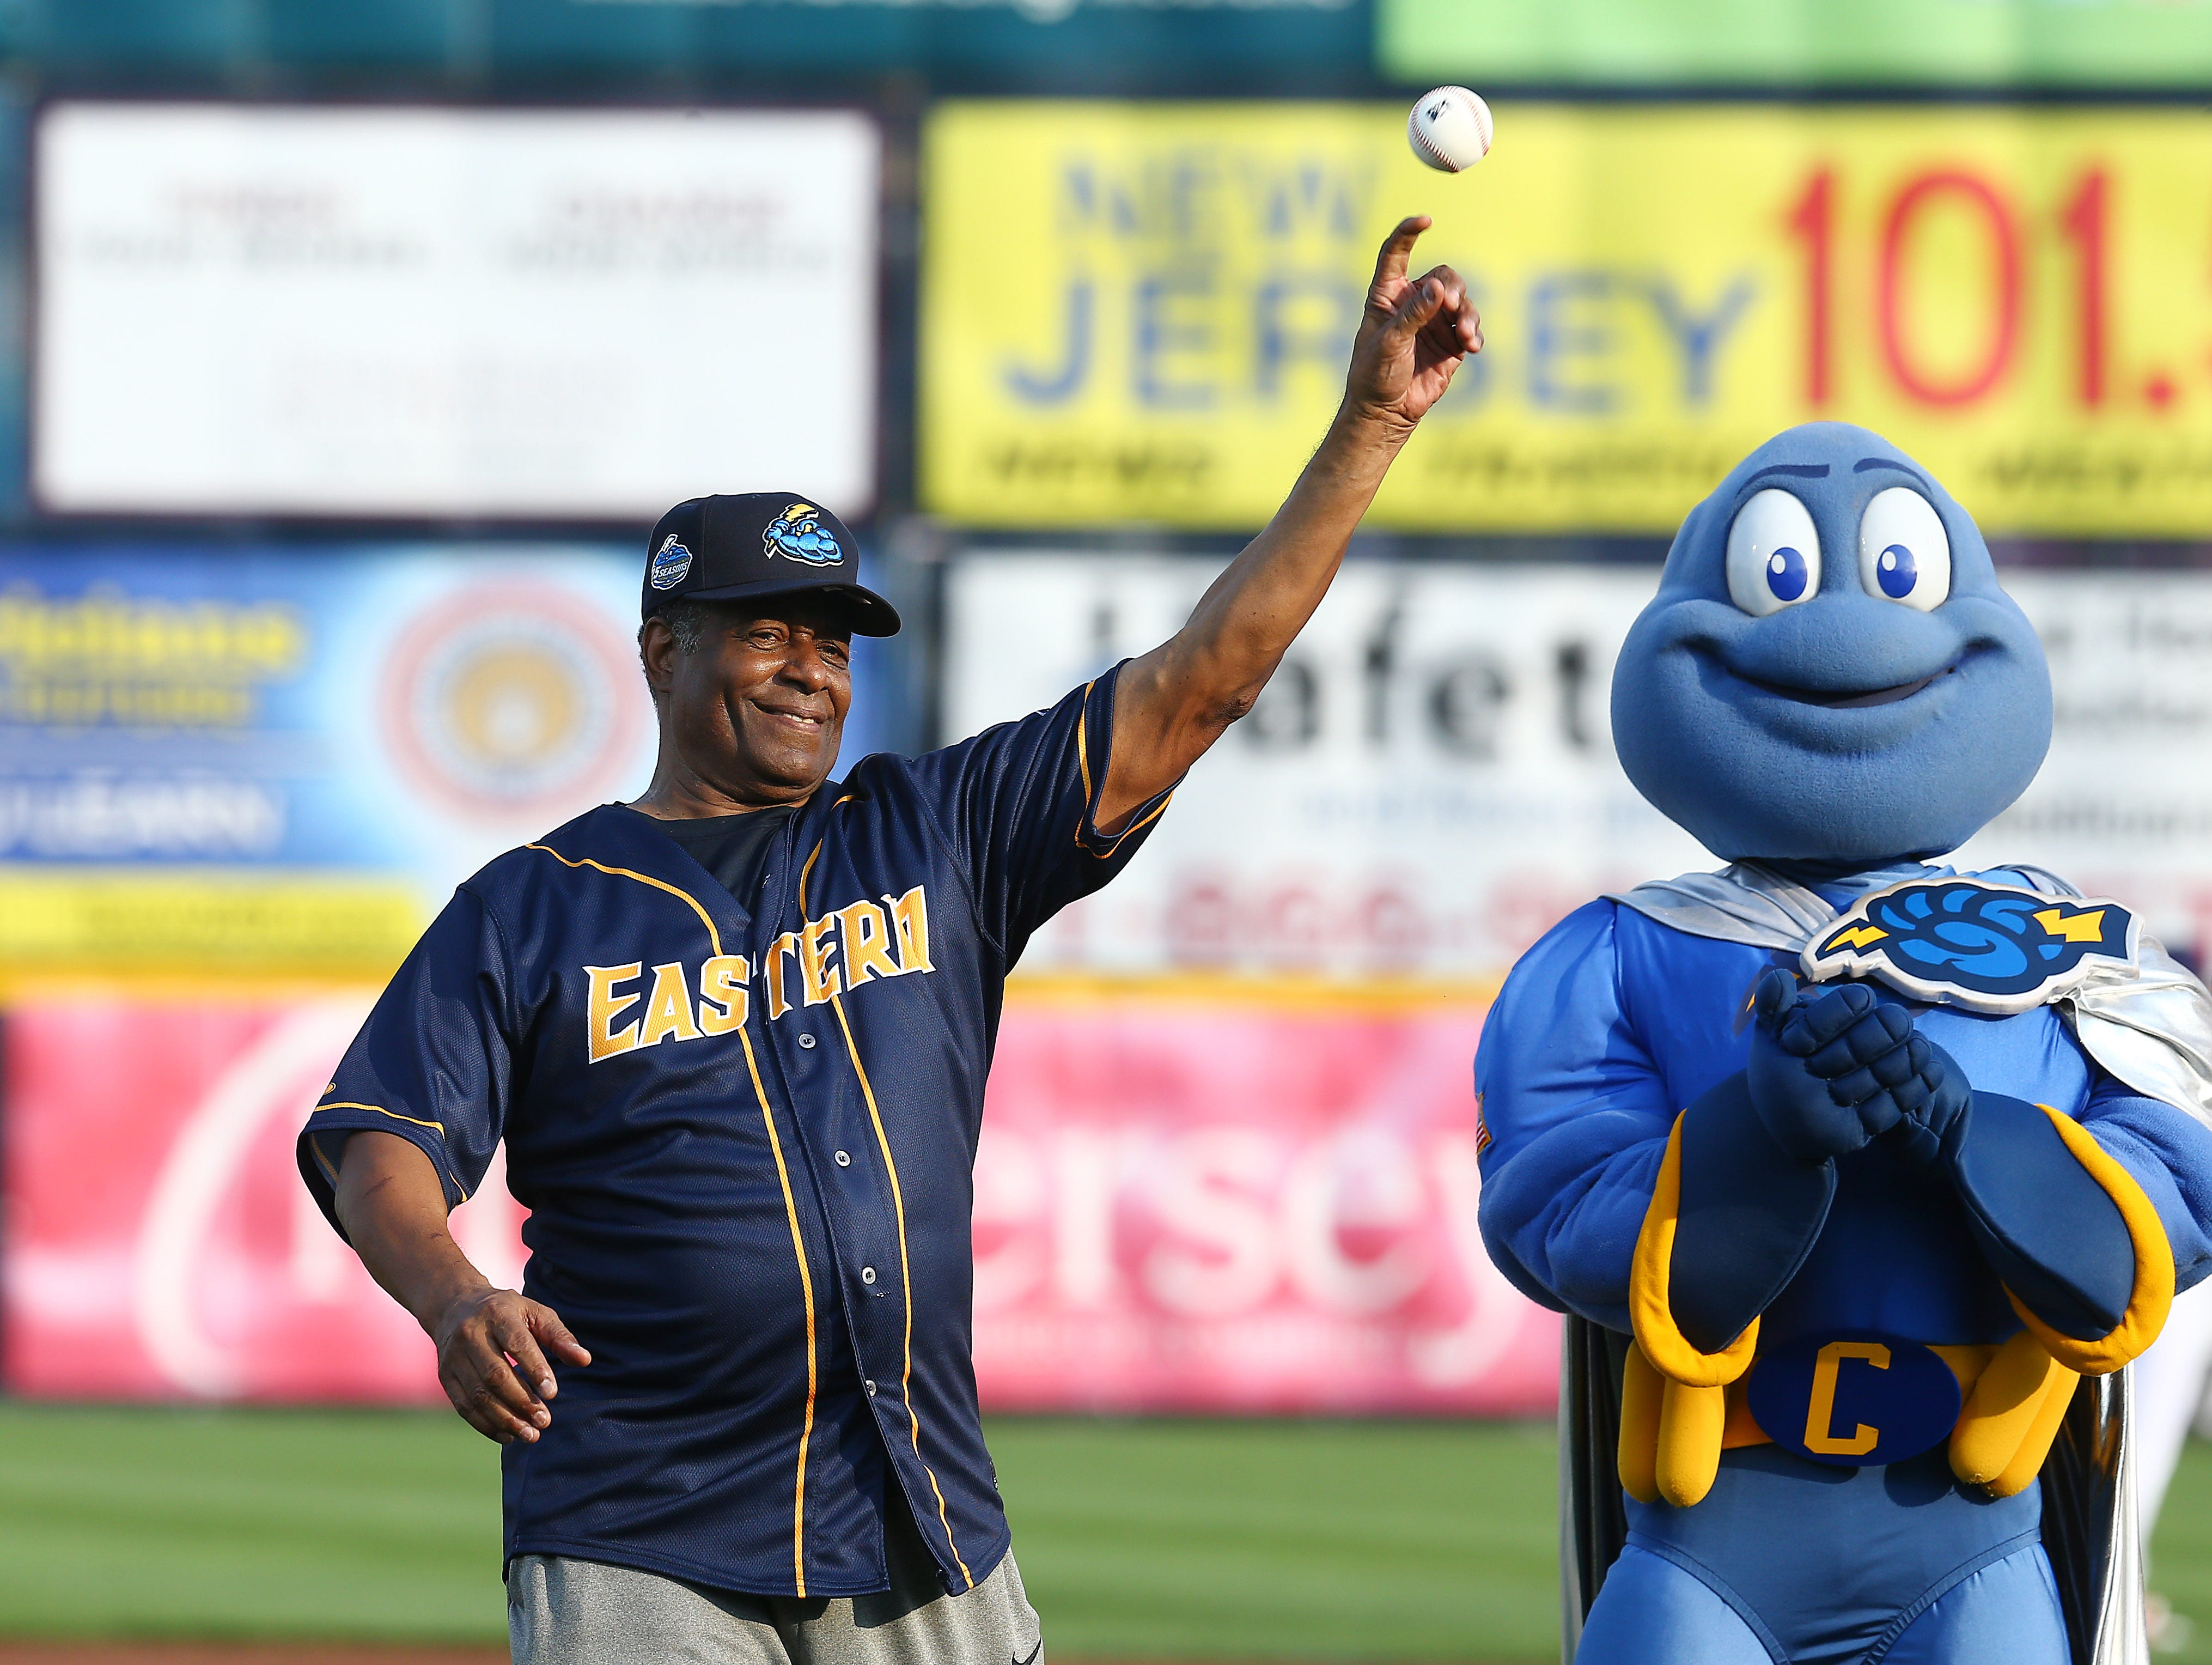 Ken Griffey Sr. throws out a ceremonial first pitch as the Trenton Thunder hosts the 2018 Eastern League All-Star Classic at ARM & HAMMER Park in Trenton. July 11, 2018, Trenton, NJ.